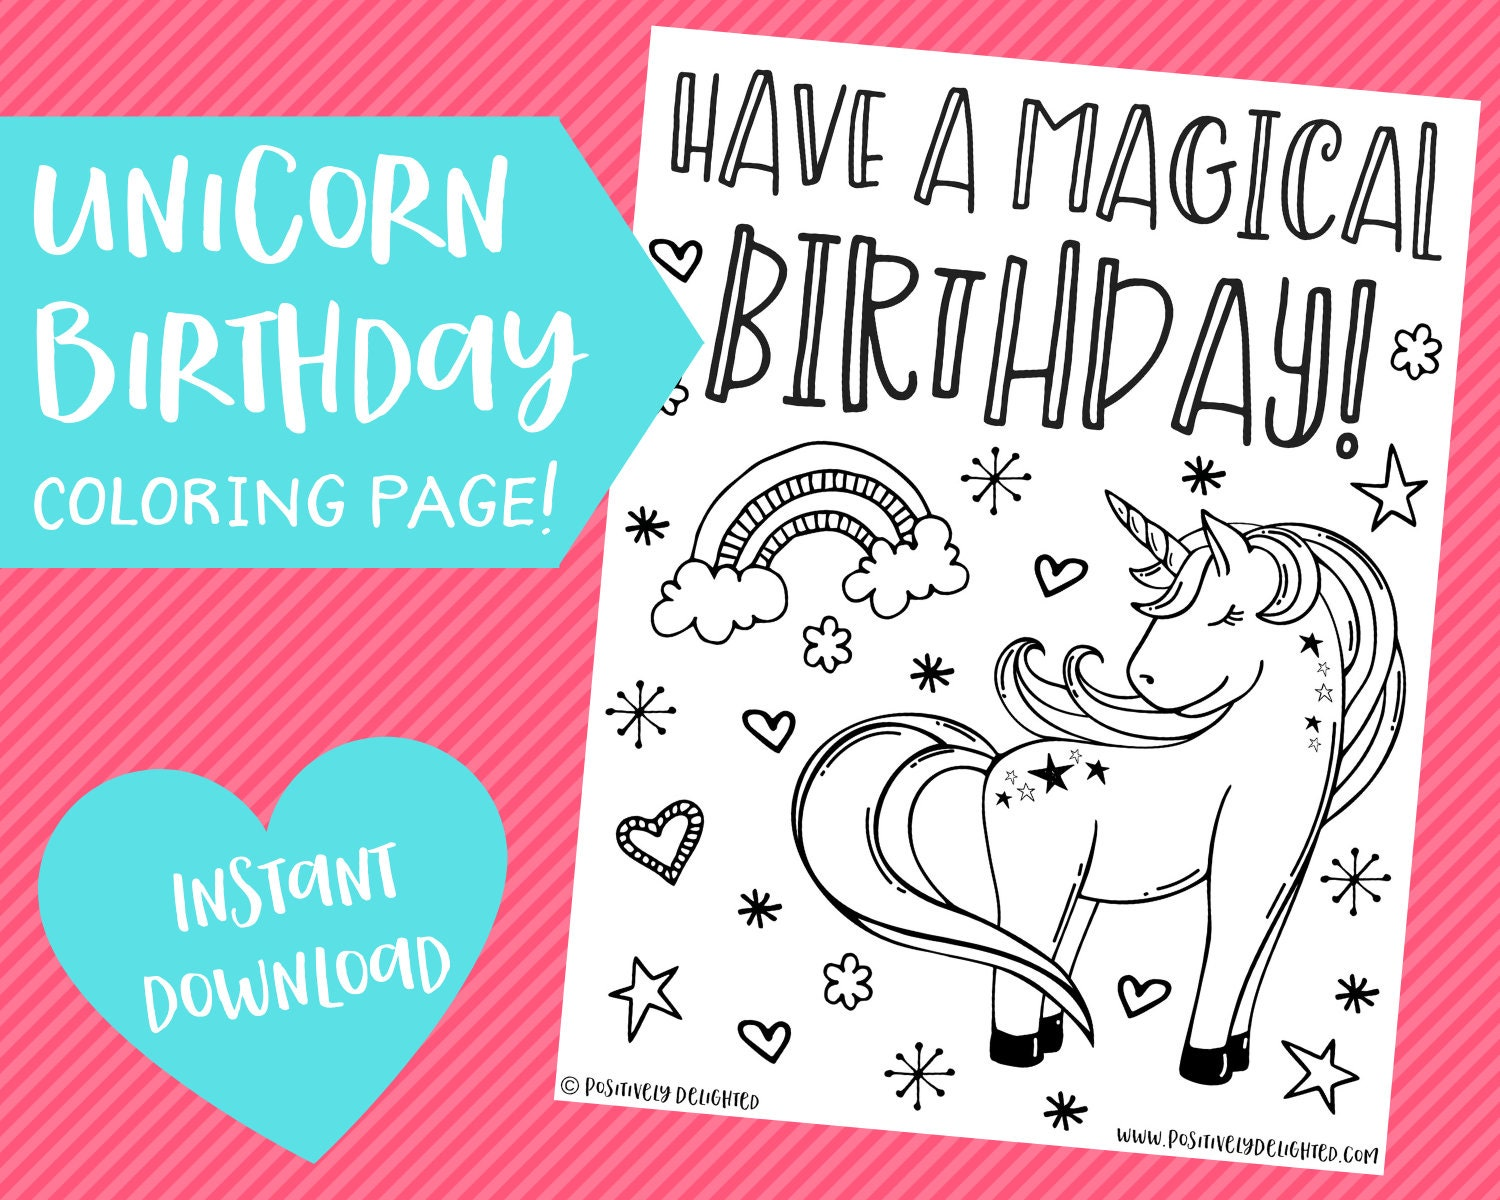 Unicorn Birthday Coloring Page   Unicorn Party   Unicorn Favor   Unicorn  Activity   Printable Coloring Pages   Instant Download PDF